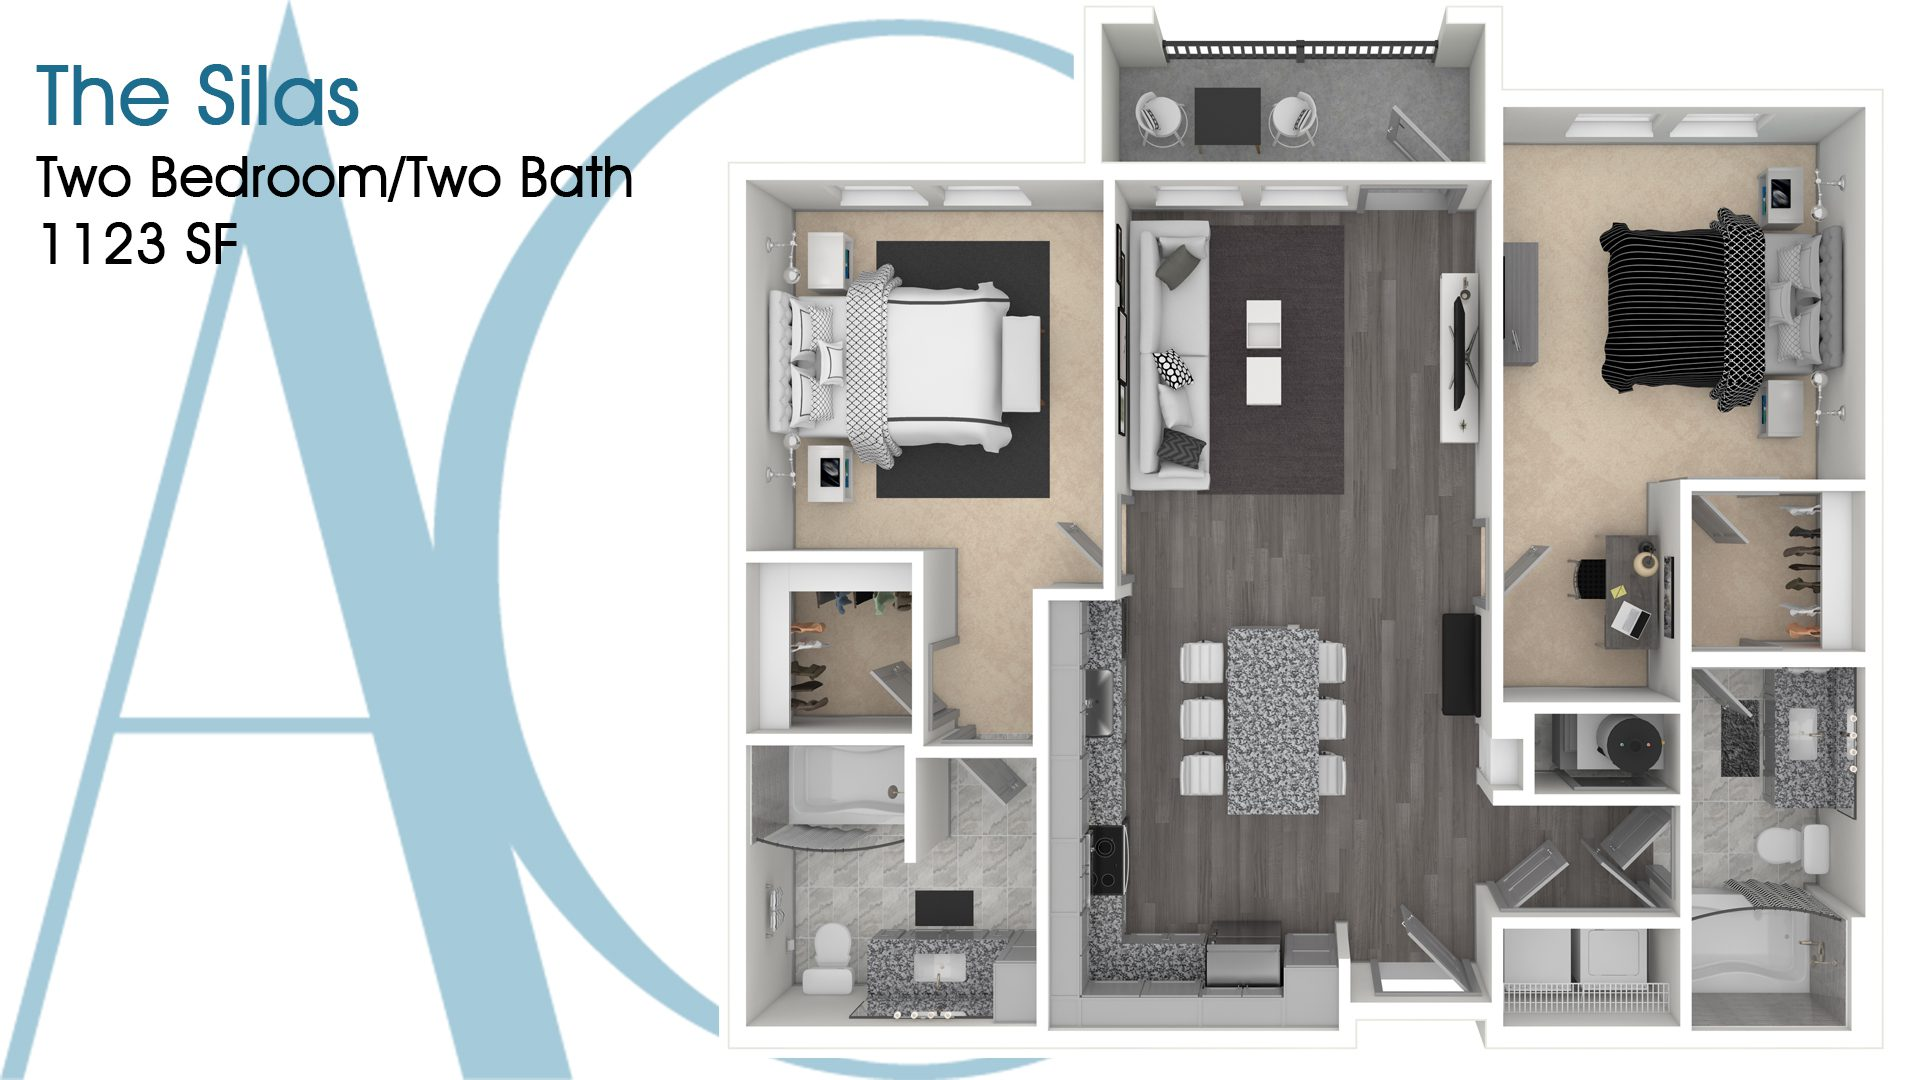 The Silas—Two-Bedroom/Two-Bath Apartment—1123 SQ. FT.